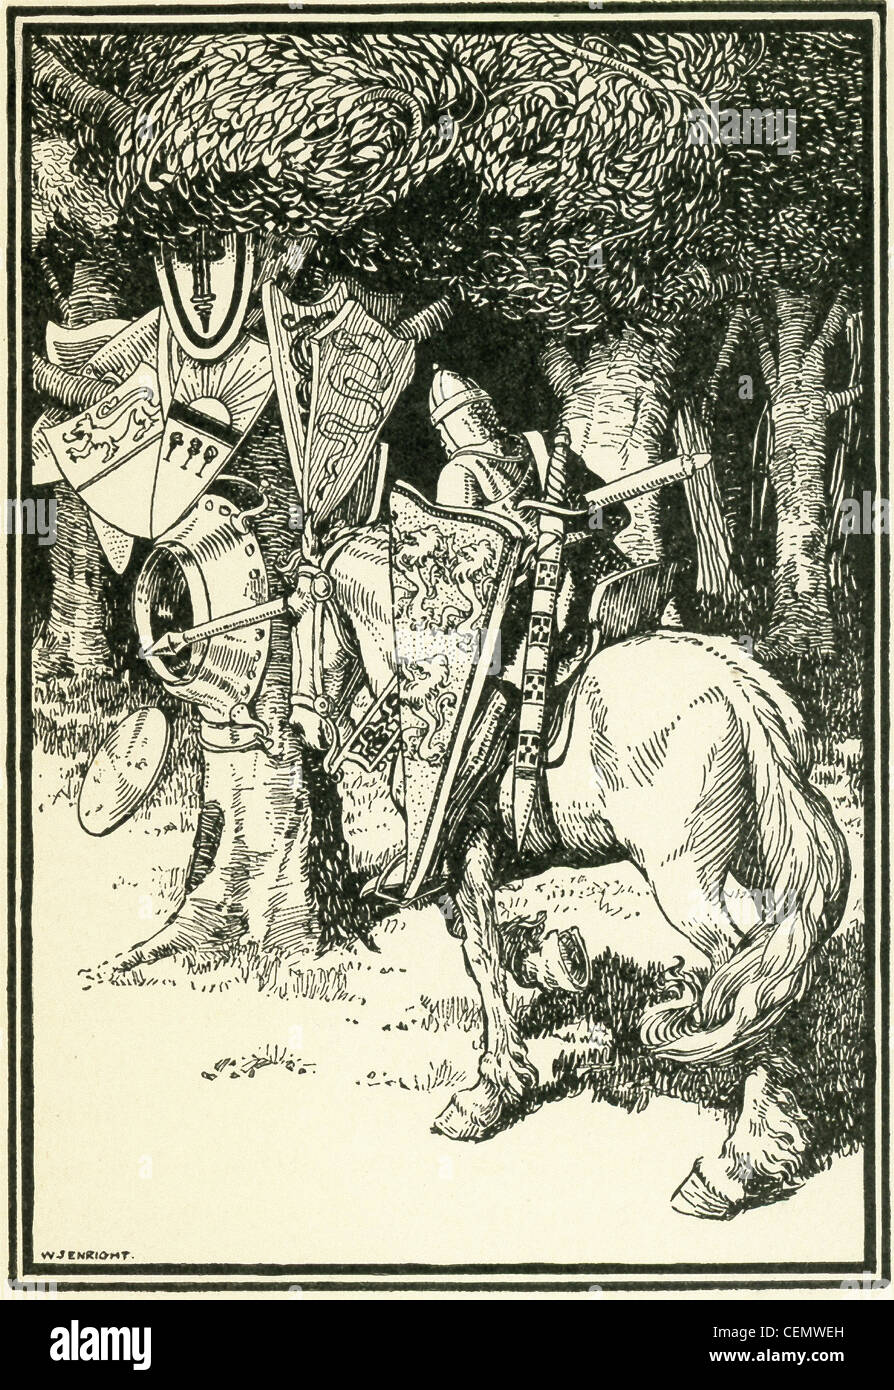 Sir Lancelot hits the bottom of an iron basin at the foot of a tree on which hung the shields of many brother knights. - Stock Image